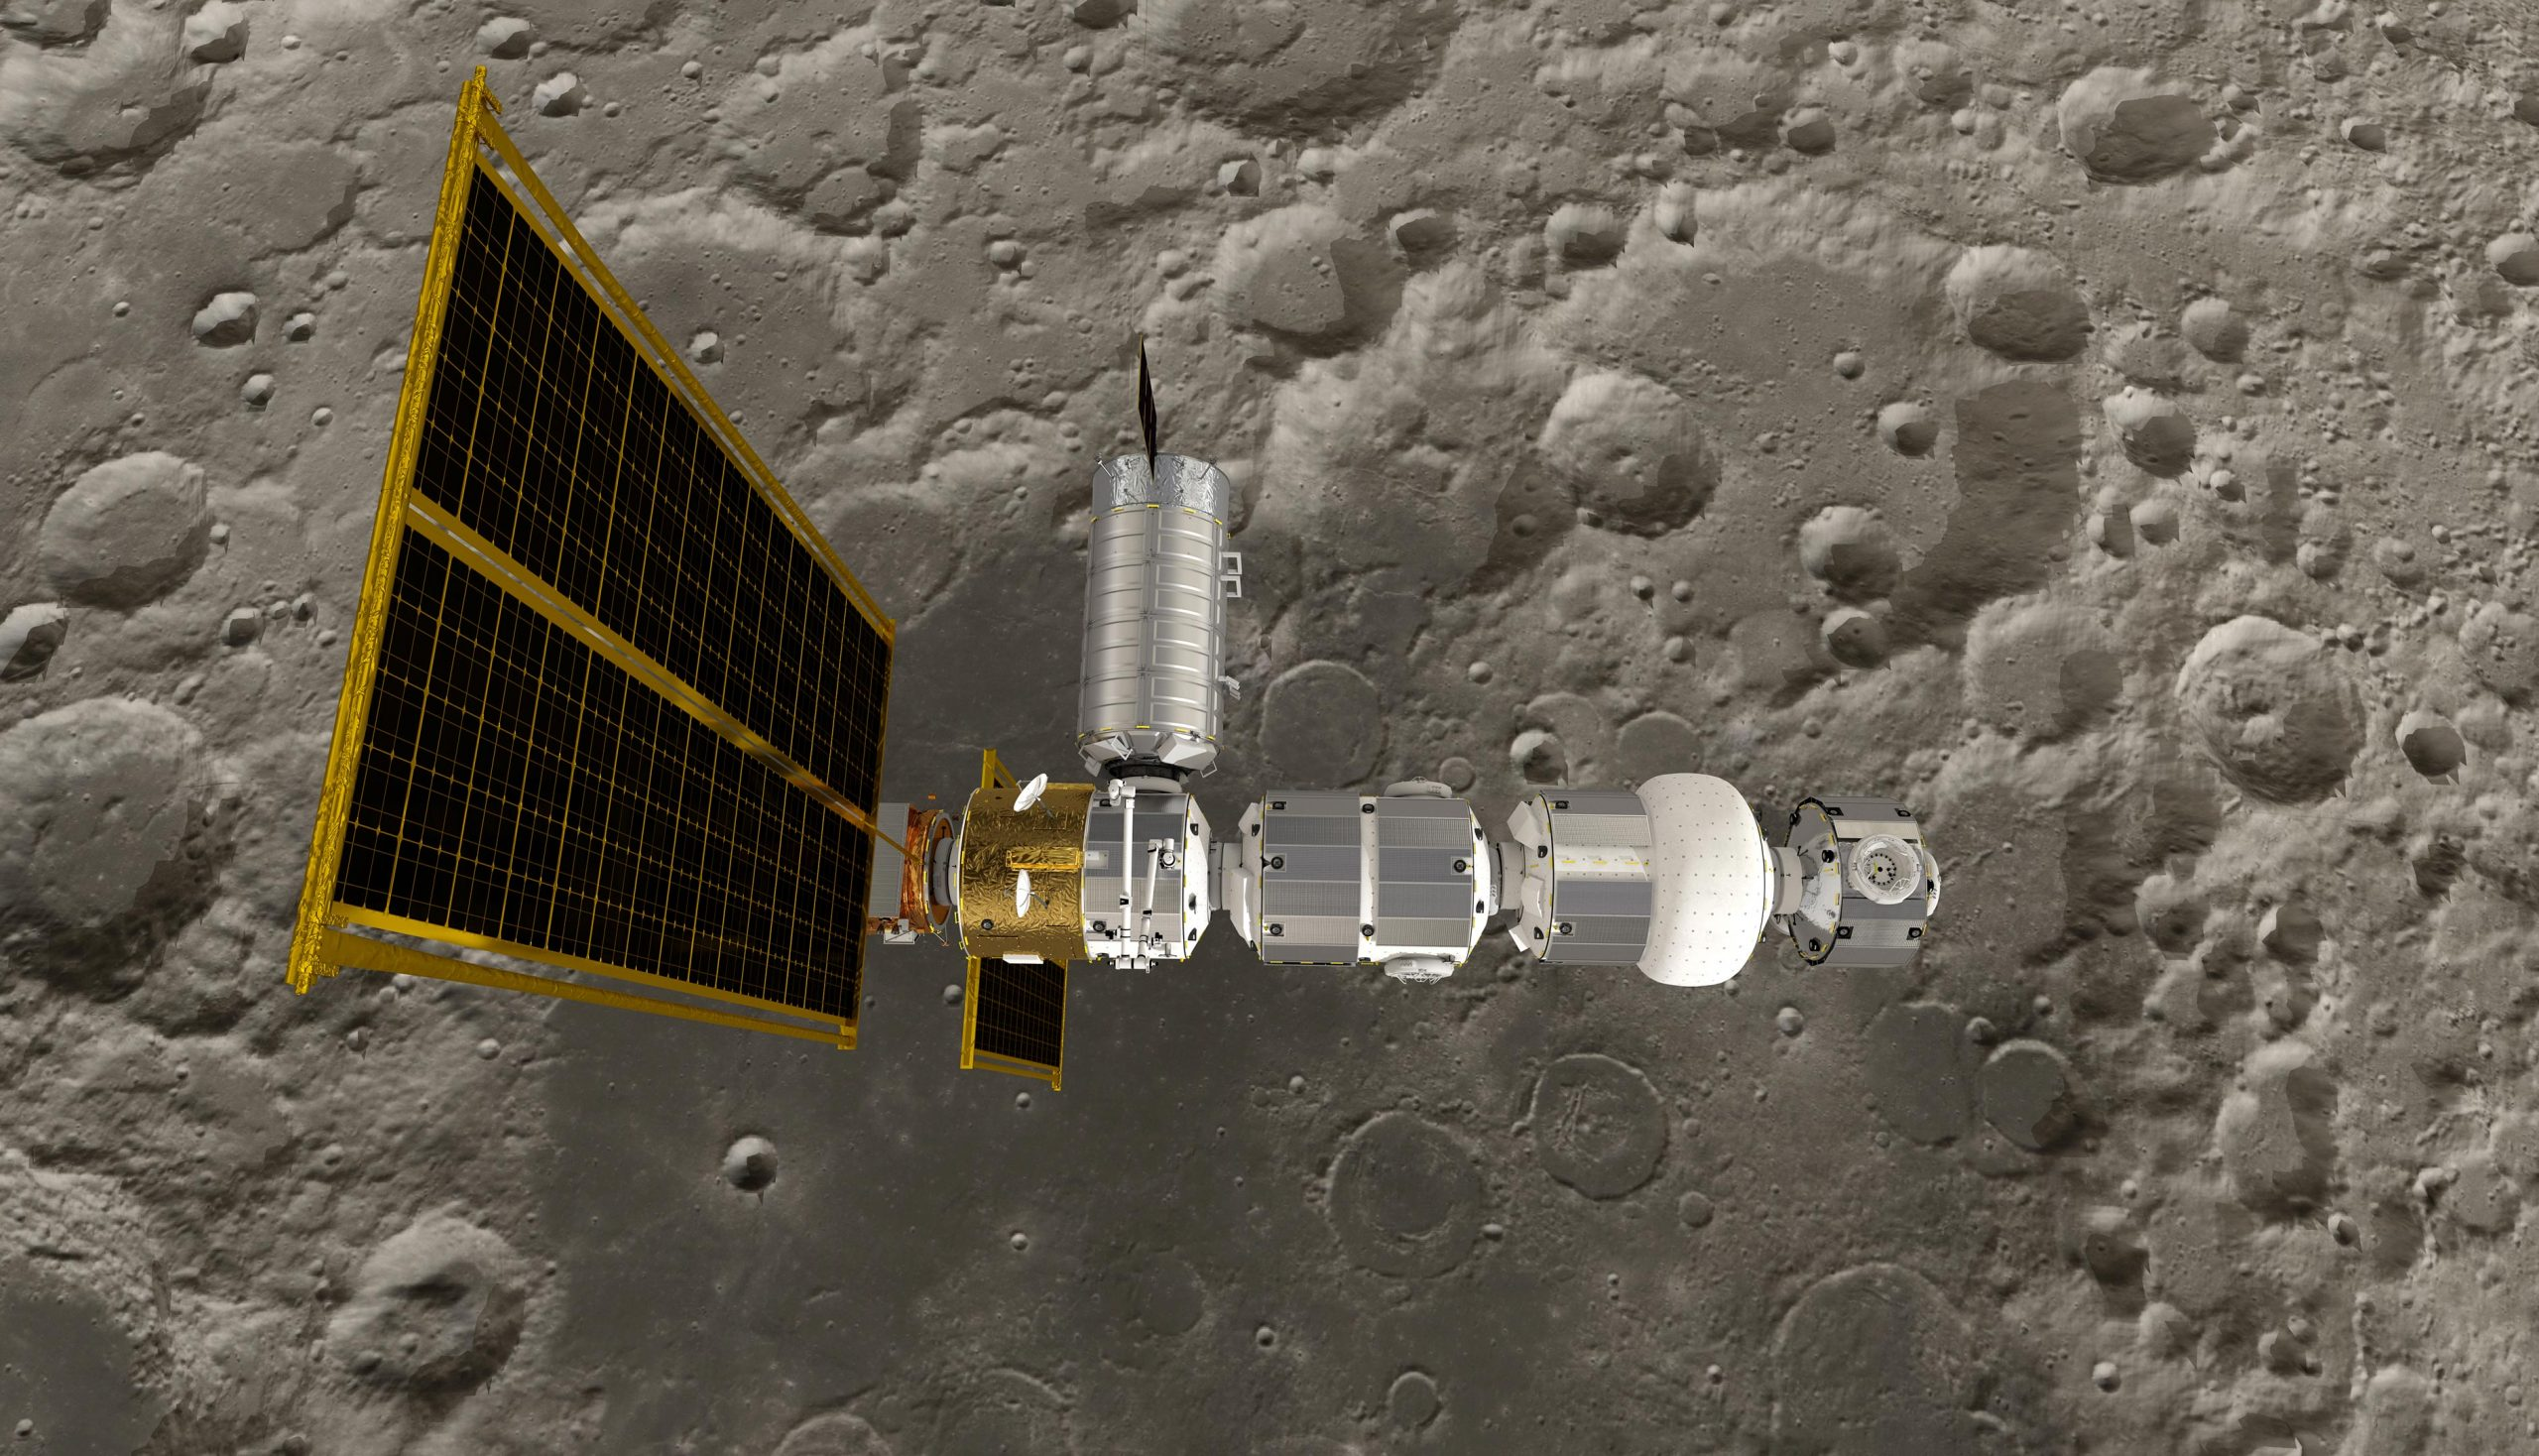 NASA Engineer Tests Positive For COVID-19, Suspends Moon Mission